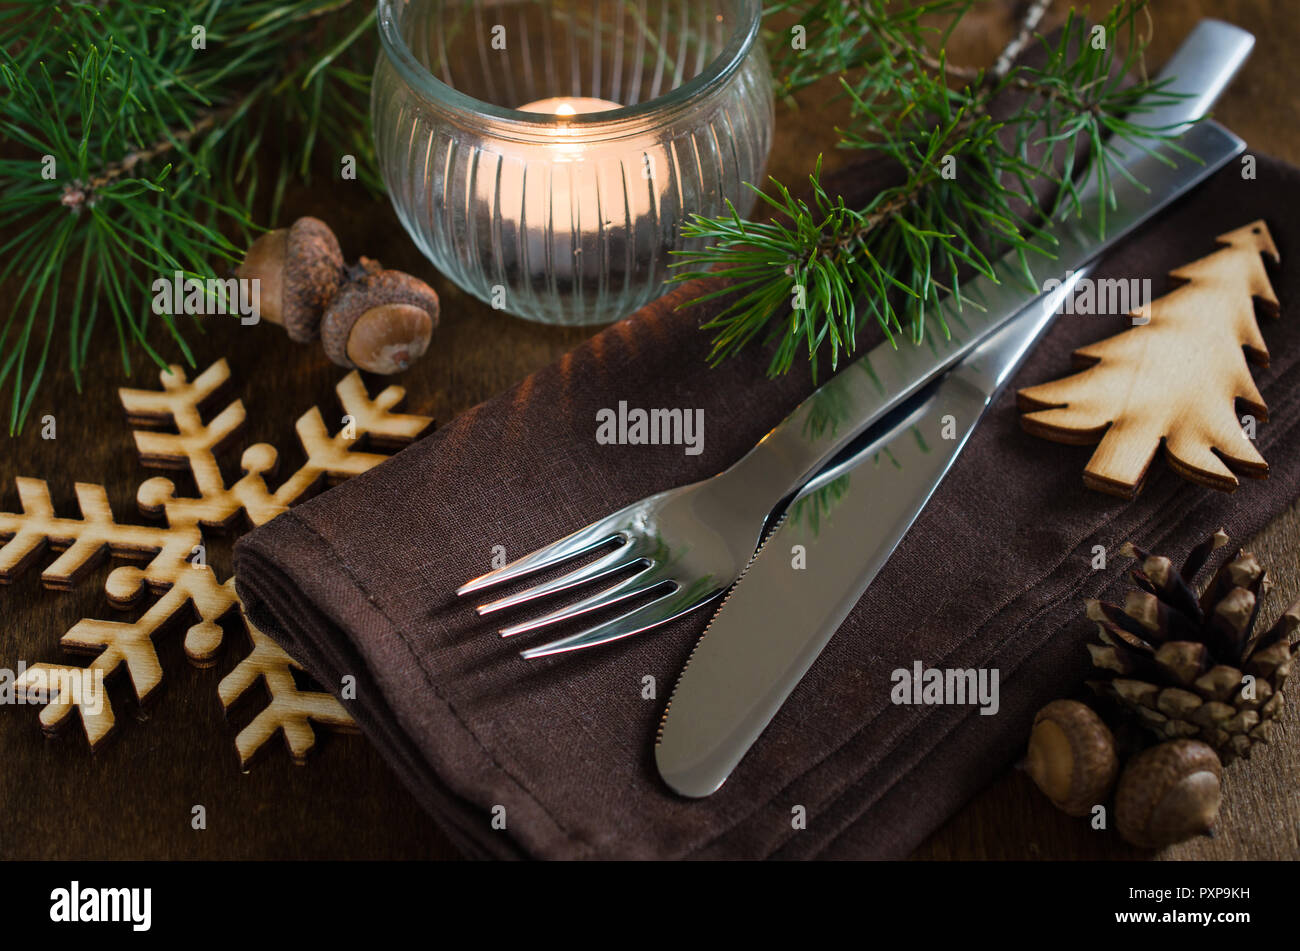 Vintage Or Rustic Christmas Table Setting With Candle And Wooden Decorations Cutlery On Linen Napkin On Rustic Wooden Background Country Style Sel Stock Photo Alamy